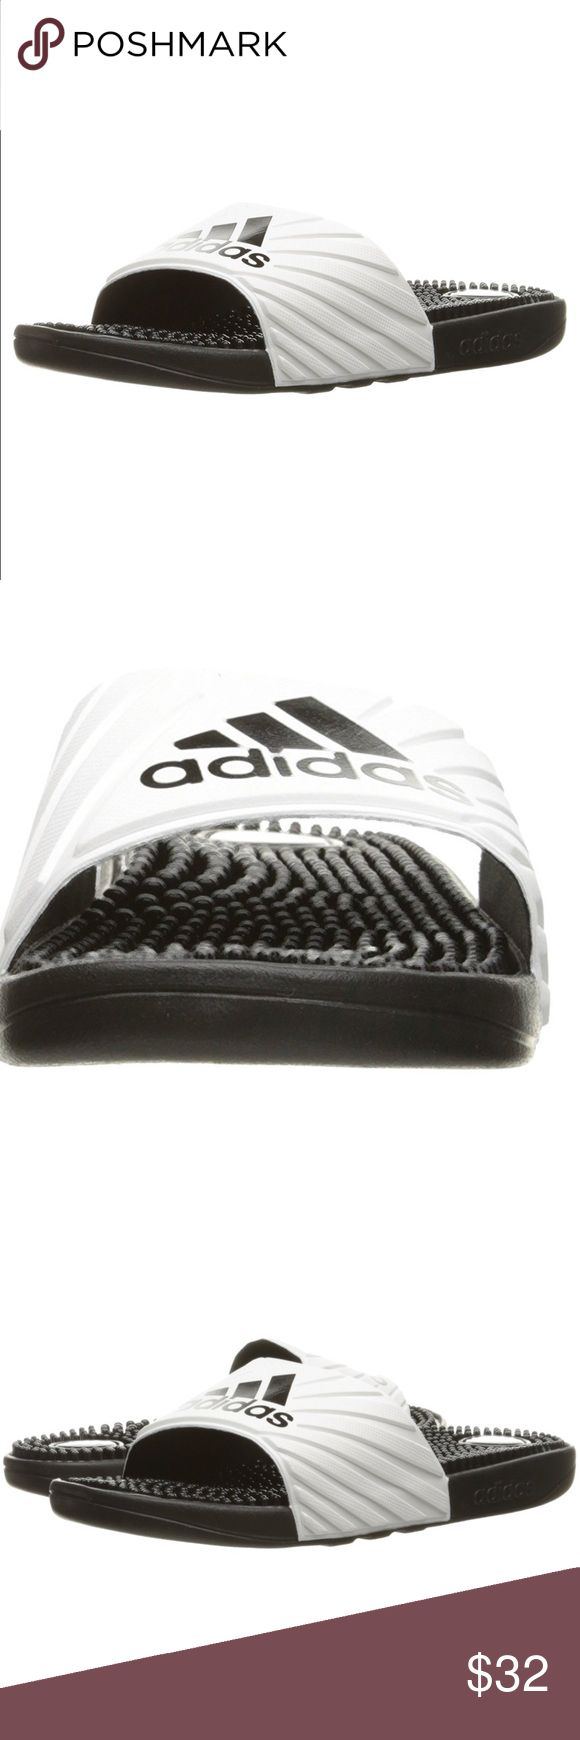 adidas women's slide on sandals Performance Women's Voloossage W Athletic Sandal *NEW adidas   Shoes Sandals